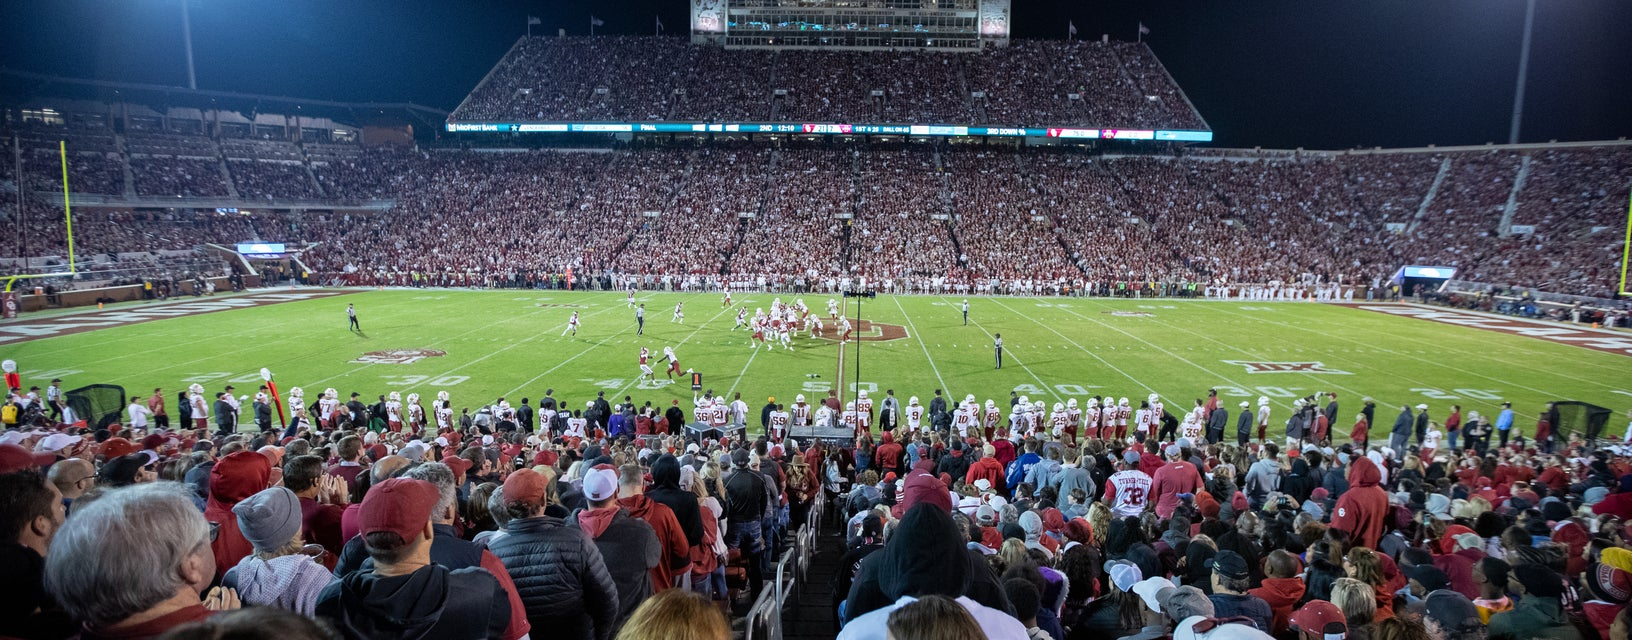 Seat view from Lower Sideline